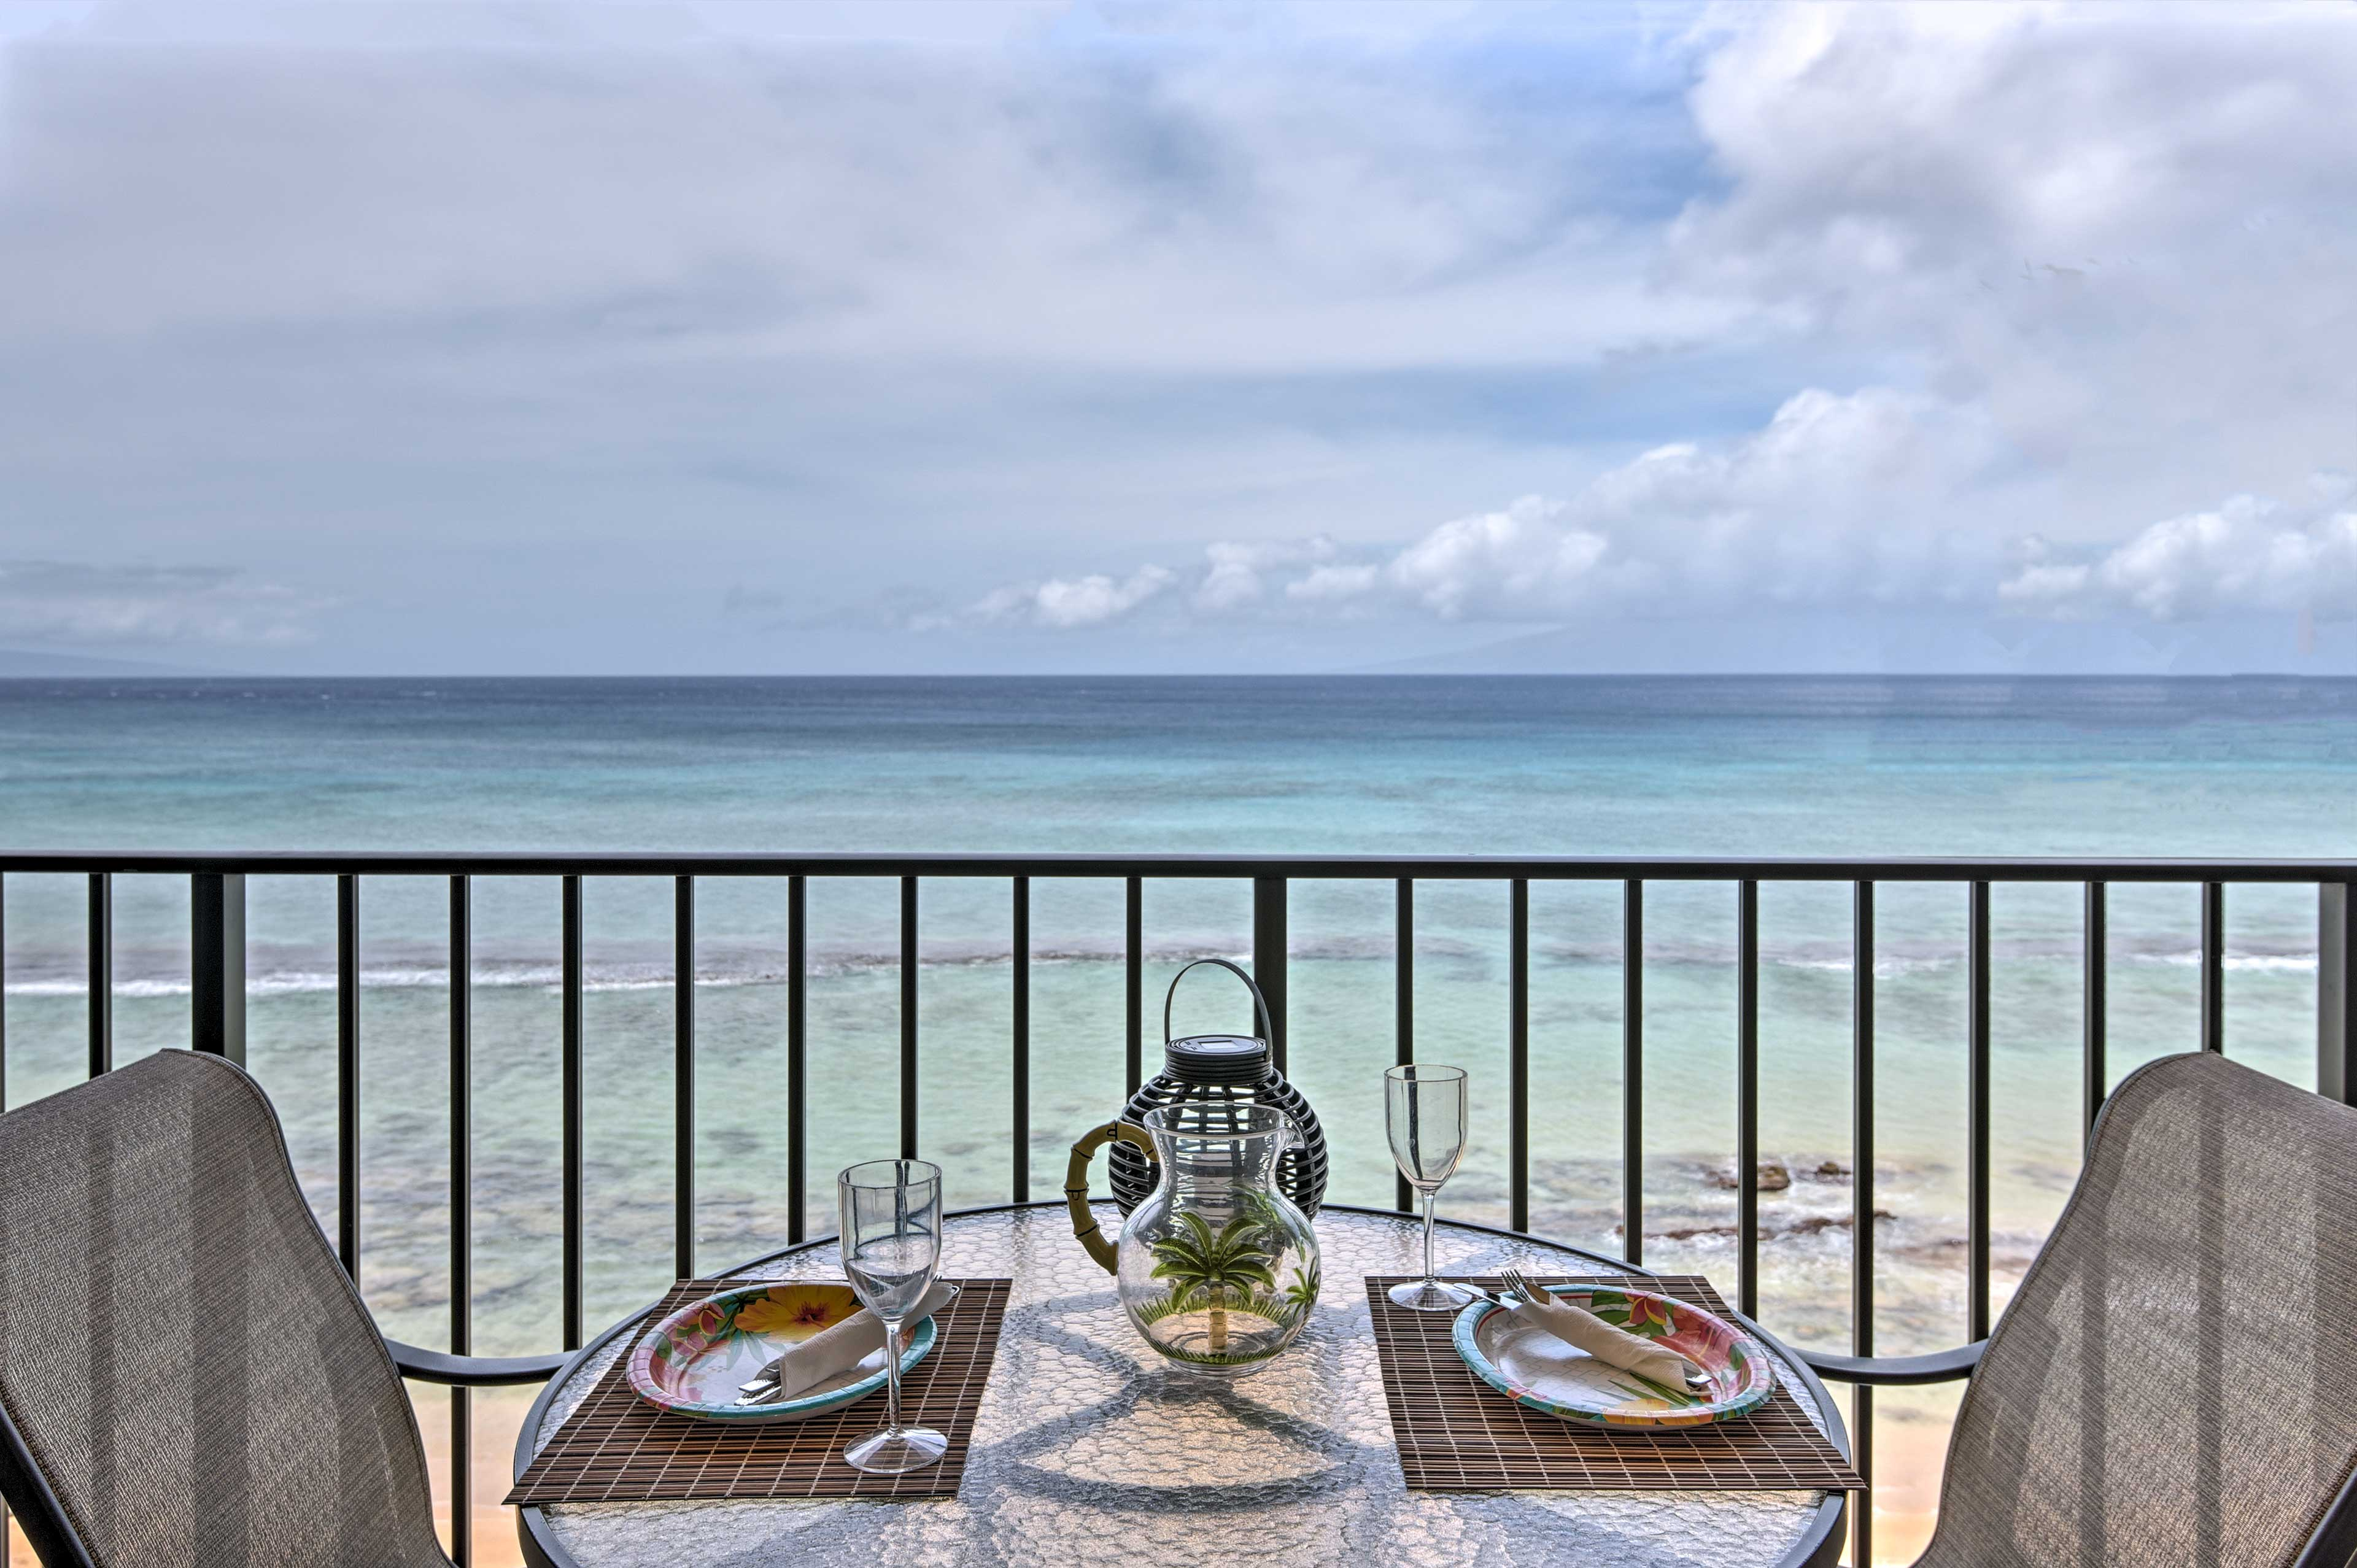 Table for 2 with ocean views? Don't mind if I do!